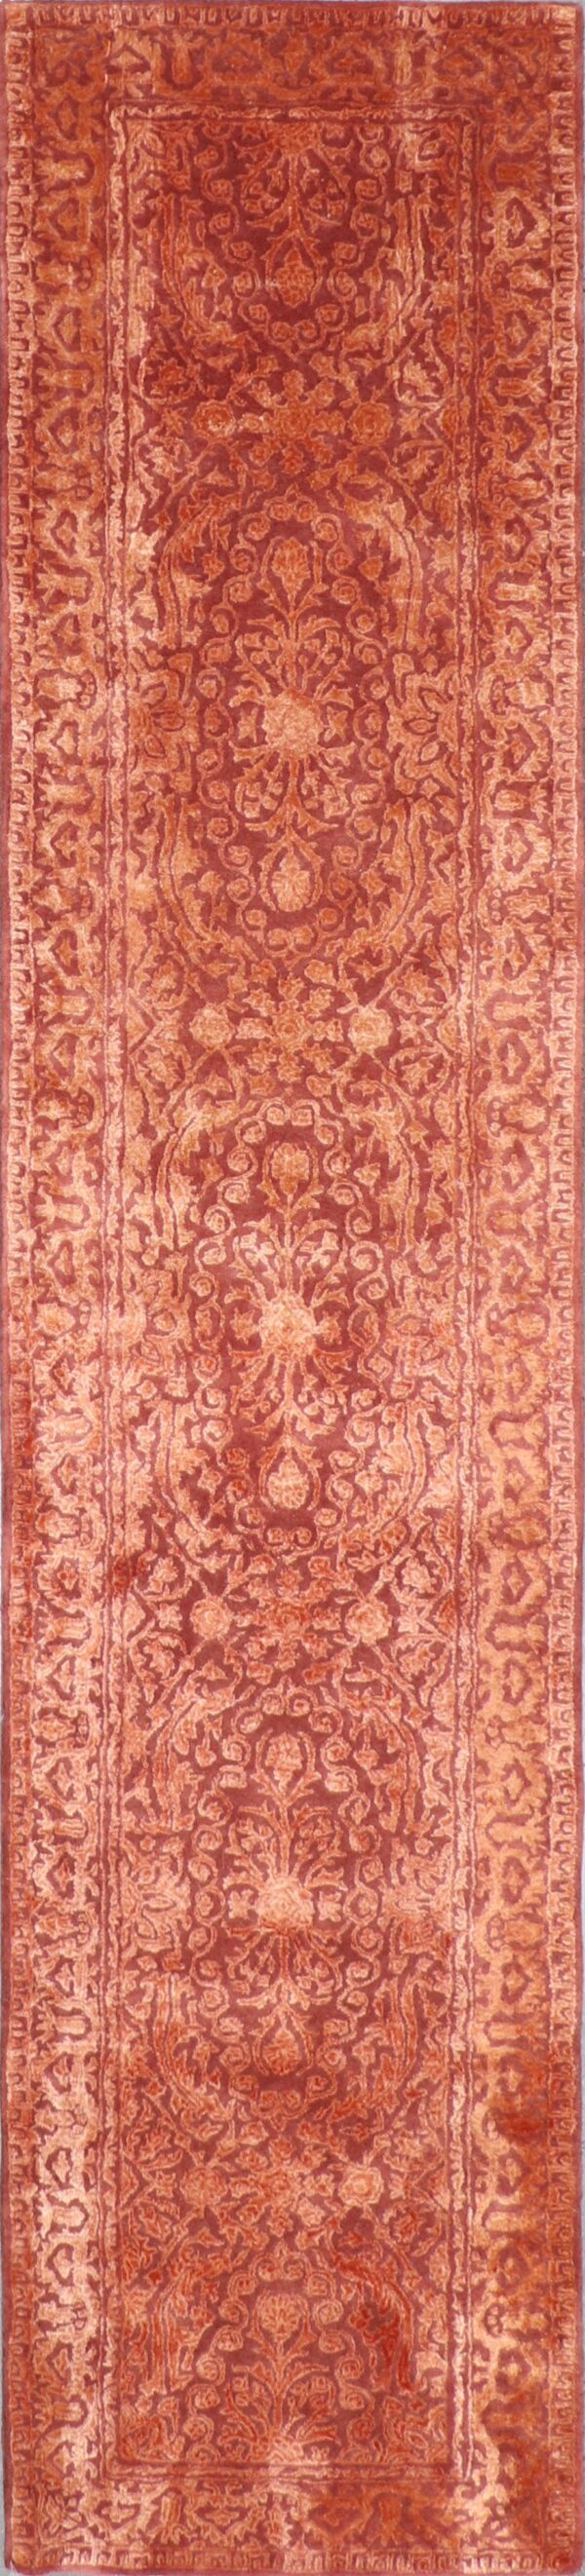 """2'6""""x11'8"""" Transitional Wool & Silk Hand-Tufted Rug - Direct Rug Import 